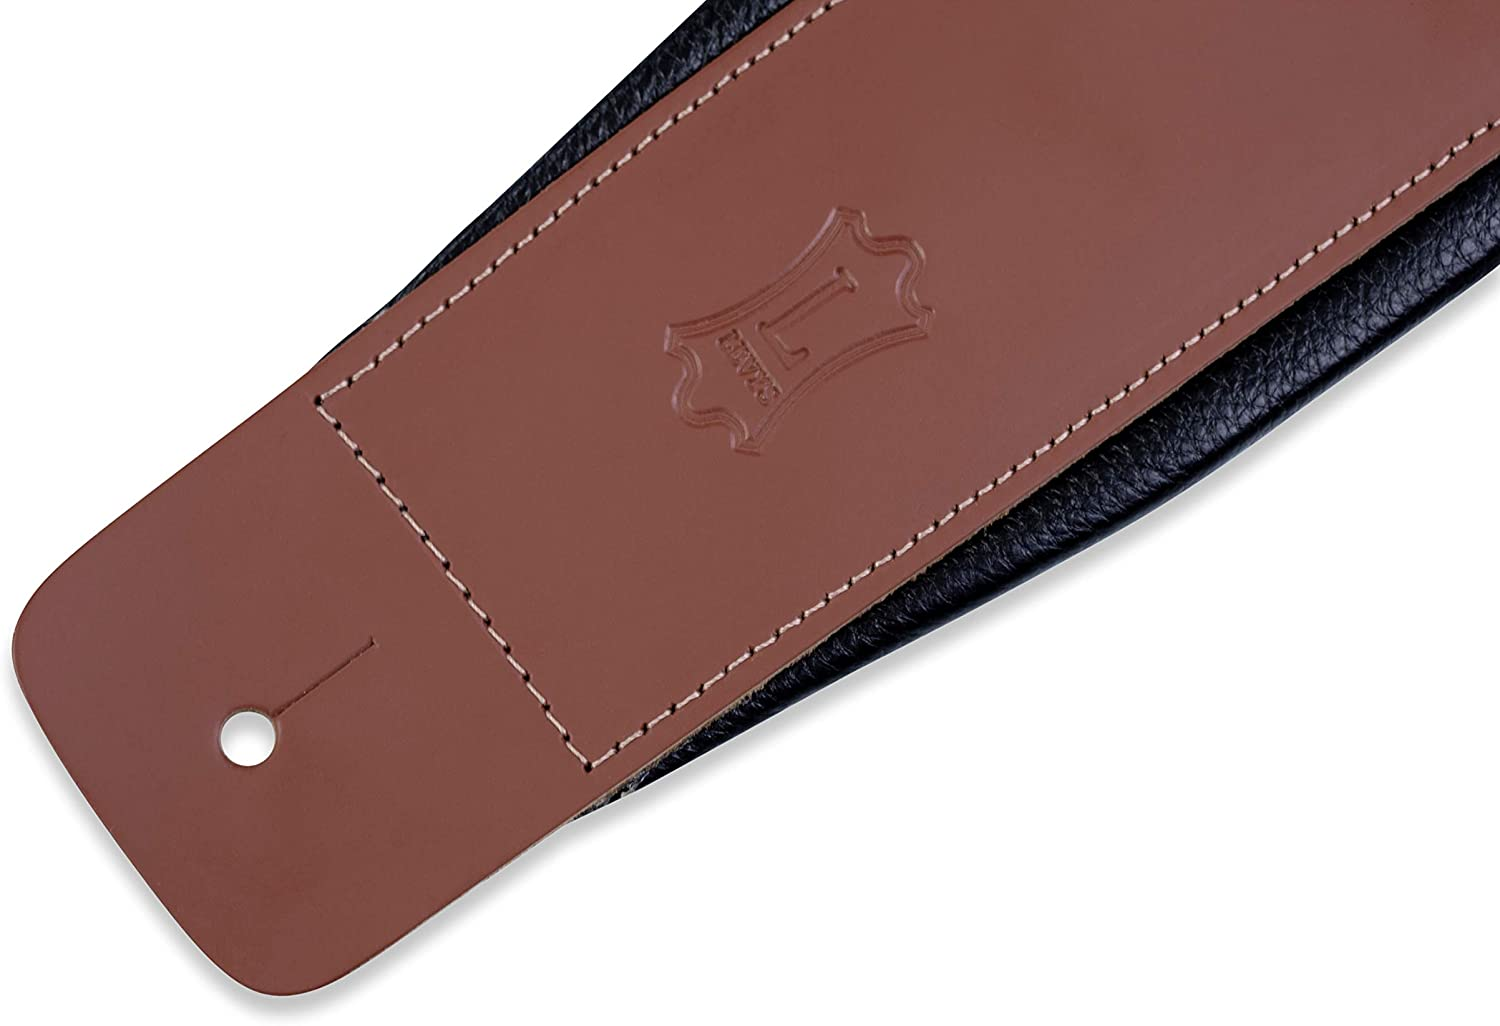 Levys Leathers 3 Leather Guitar Strap with Foam Padding and Garment Leather Backing; Brown DM1PD-BRN